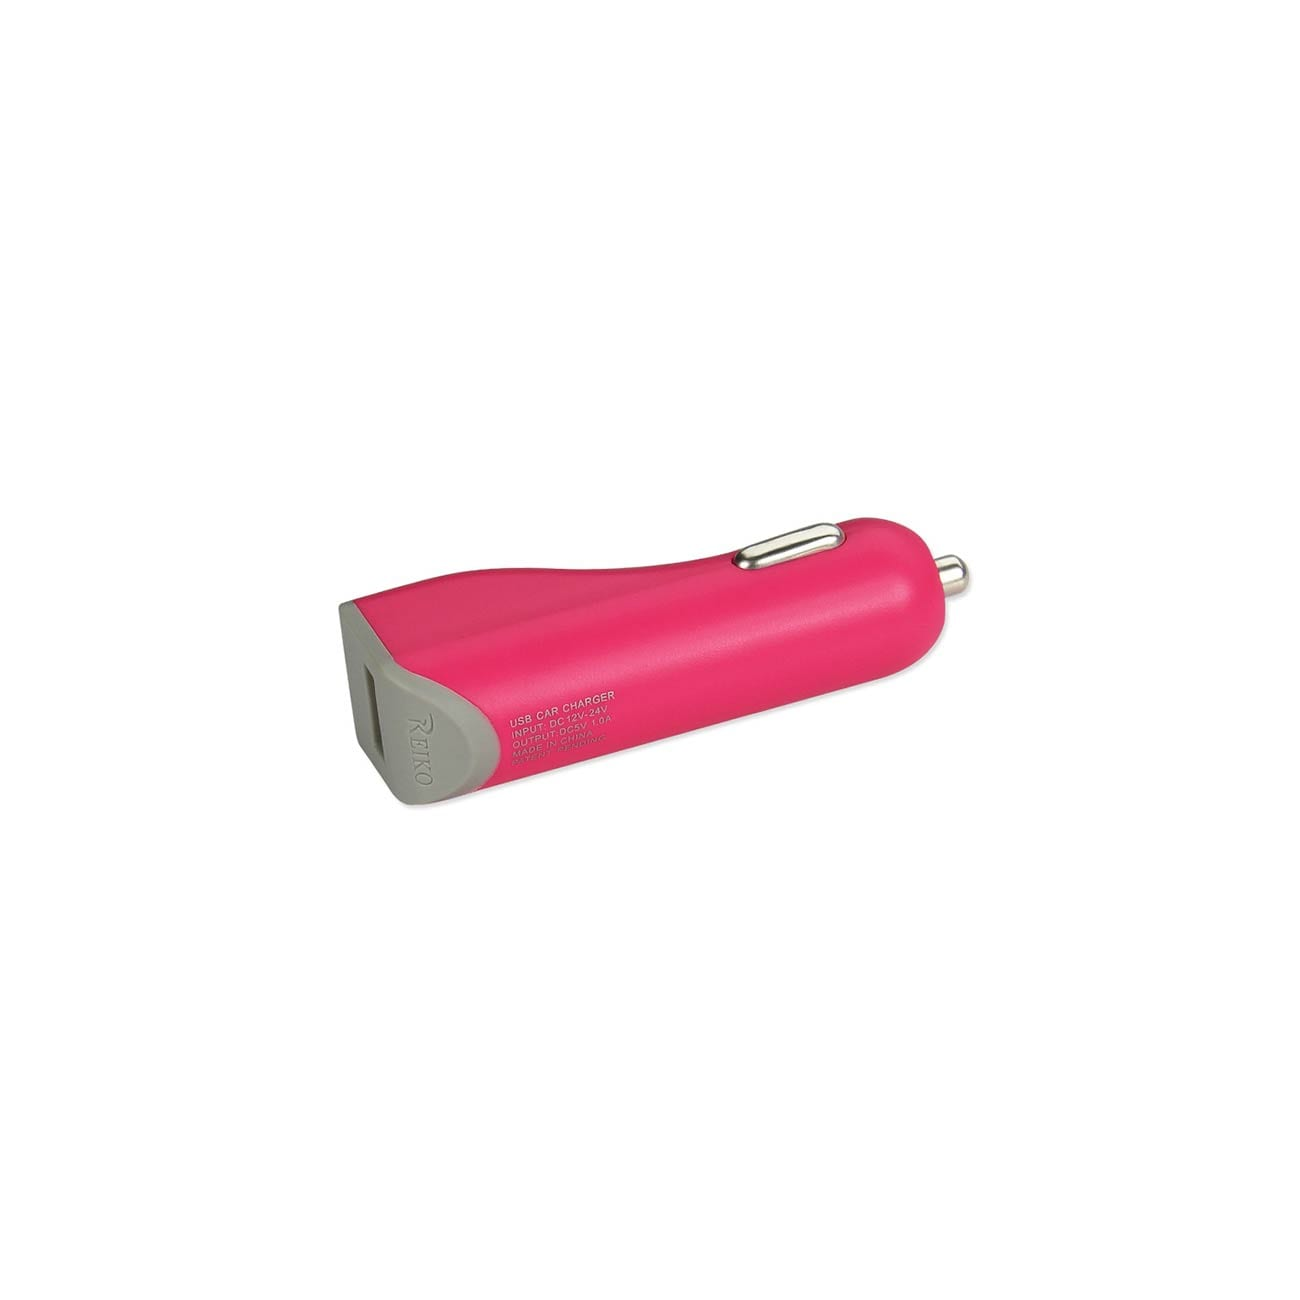 MICRO USB CAR CHARGER WITH DATA USB CABLE IN HOT PINK